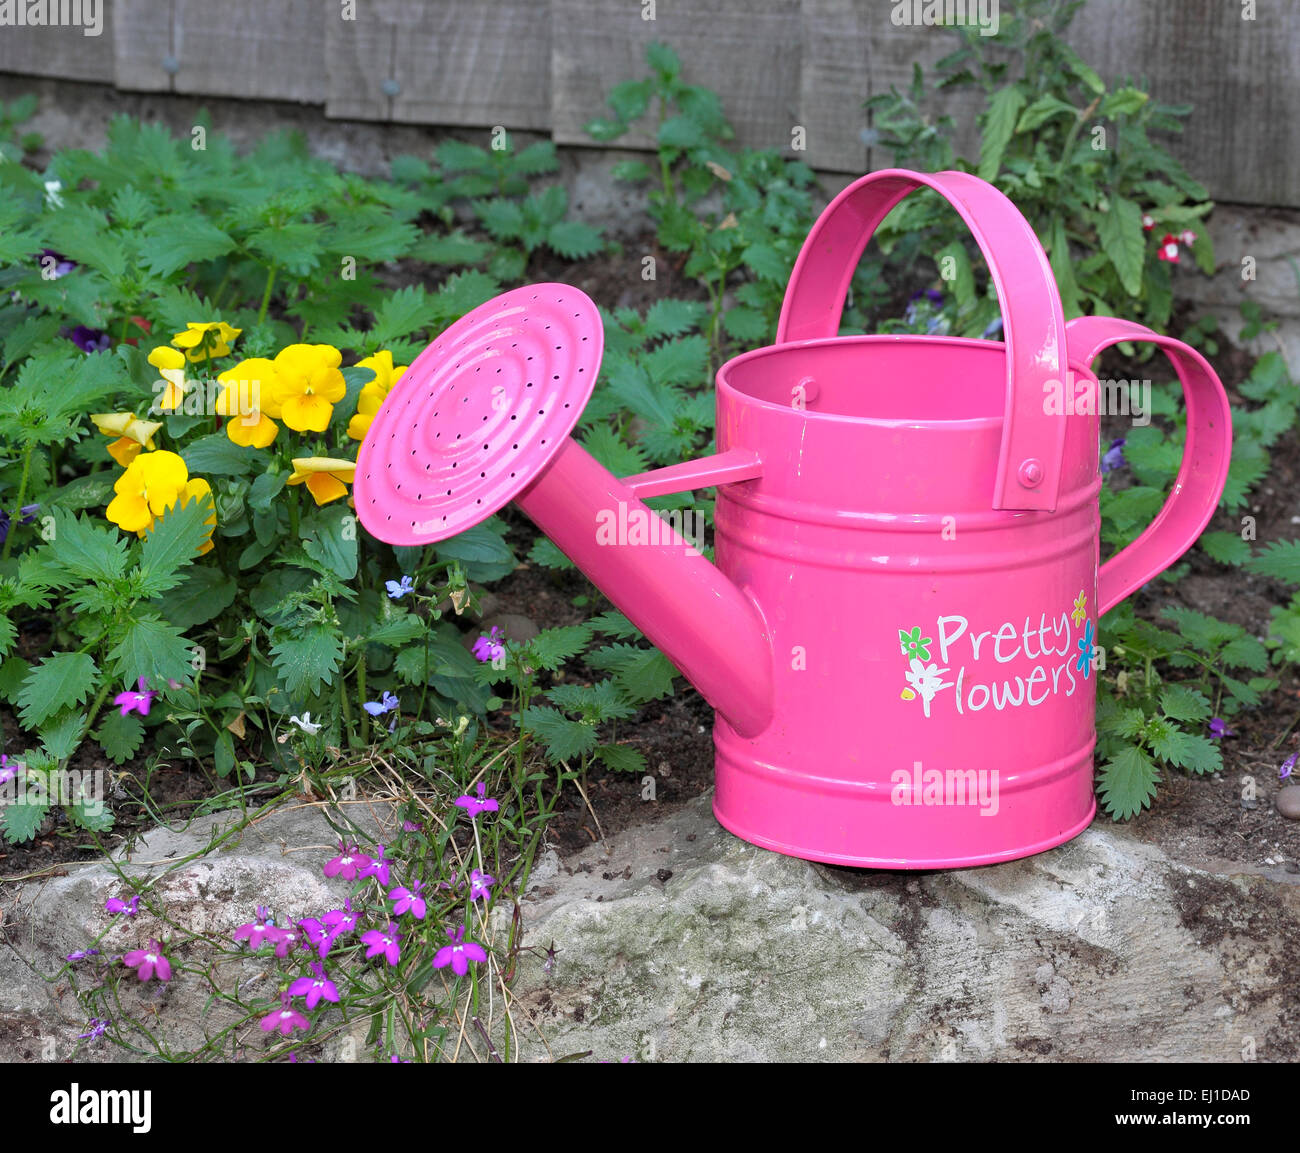 Childs pink watering can with the words pretty flowers written on childs pink watering can with the words pretty flowers written on the side mightylinksfo